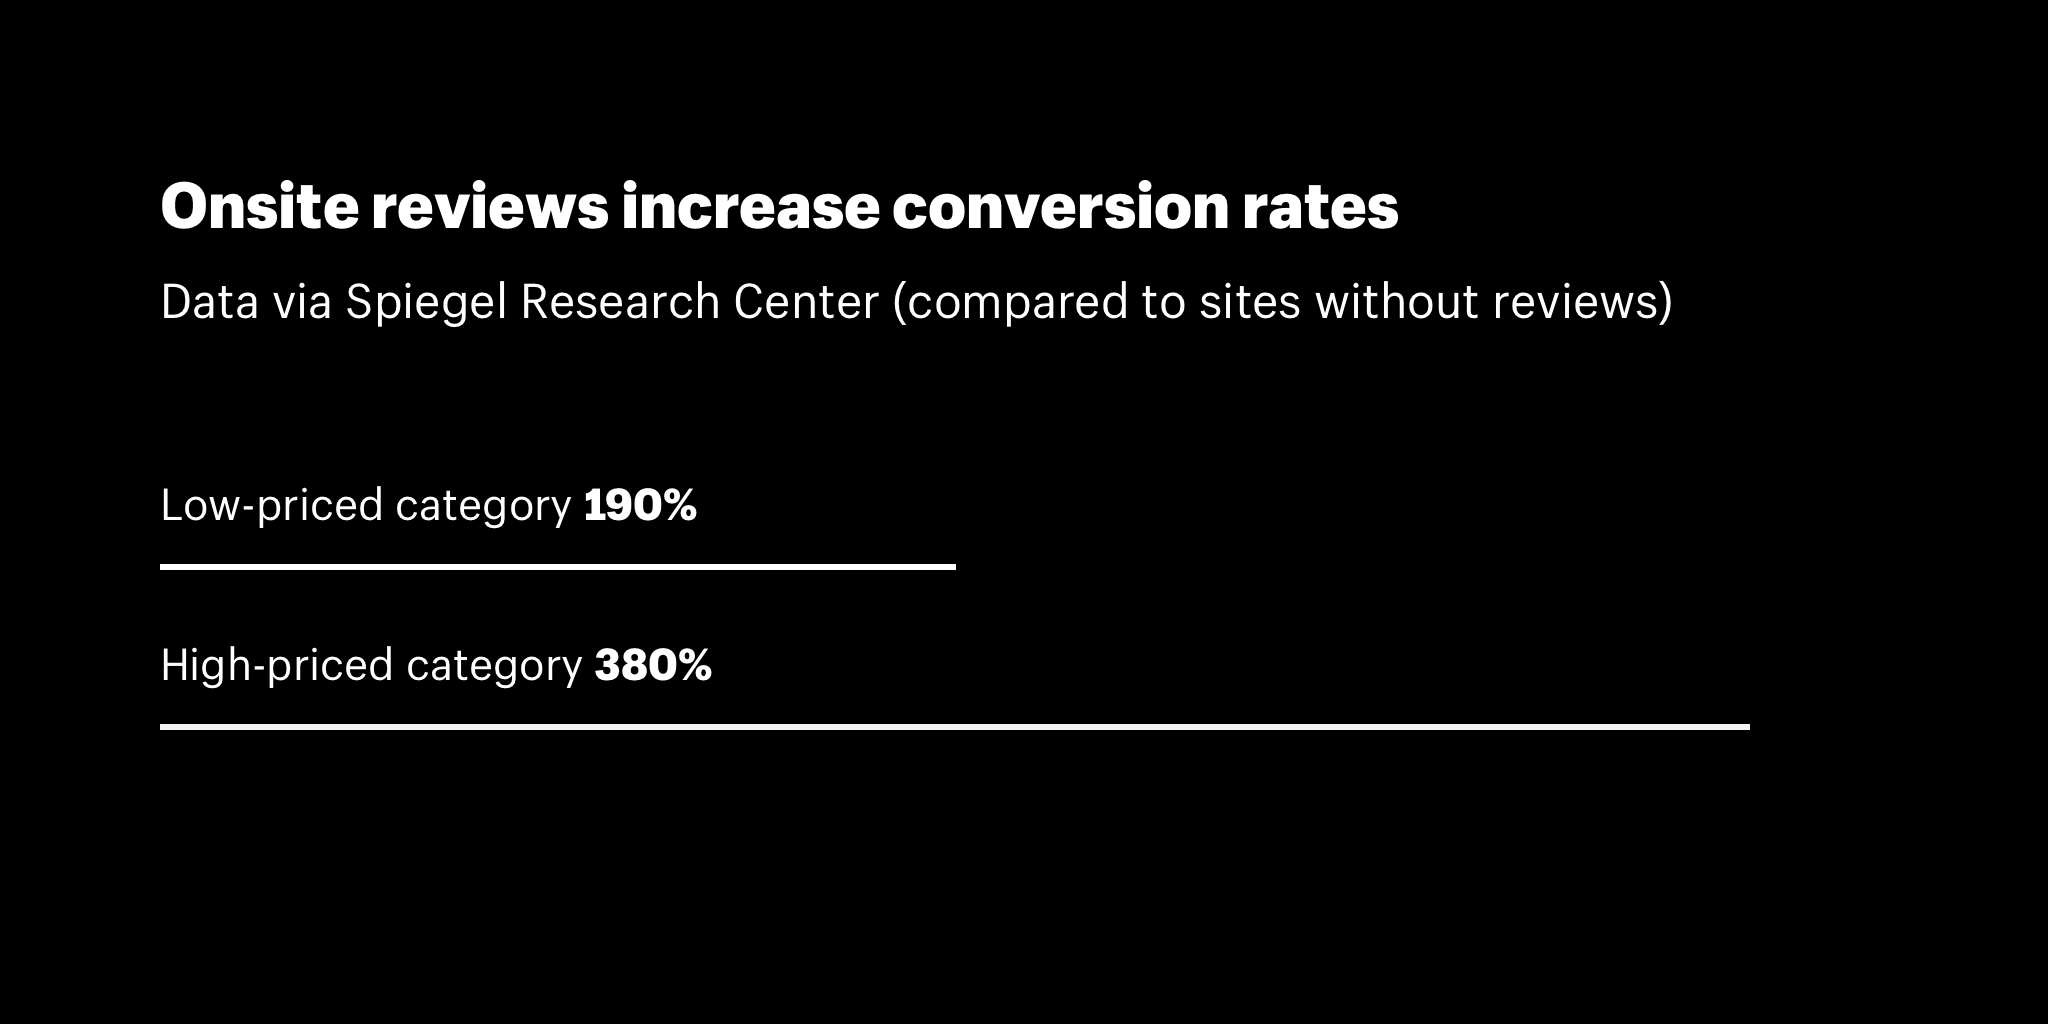 Onsite reviews increase conversion rates